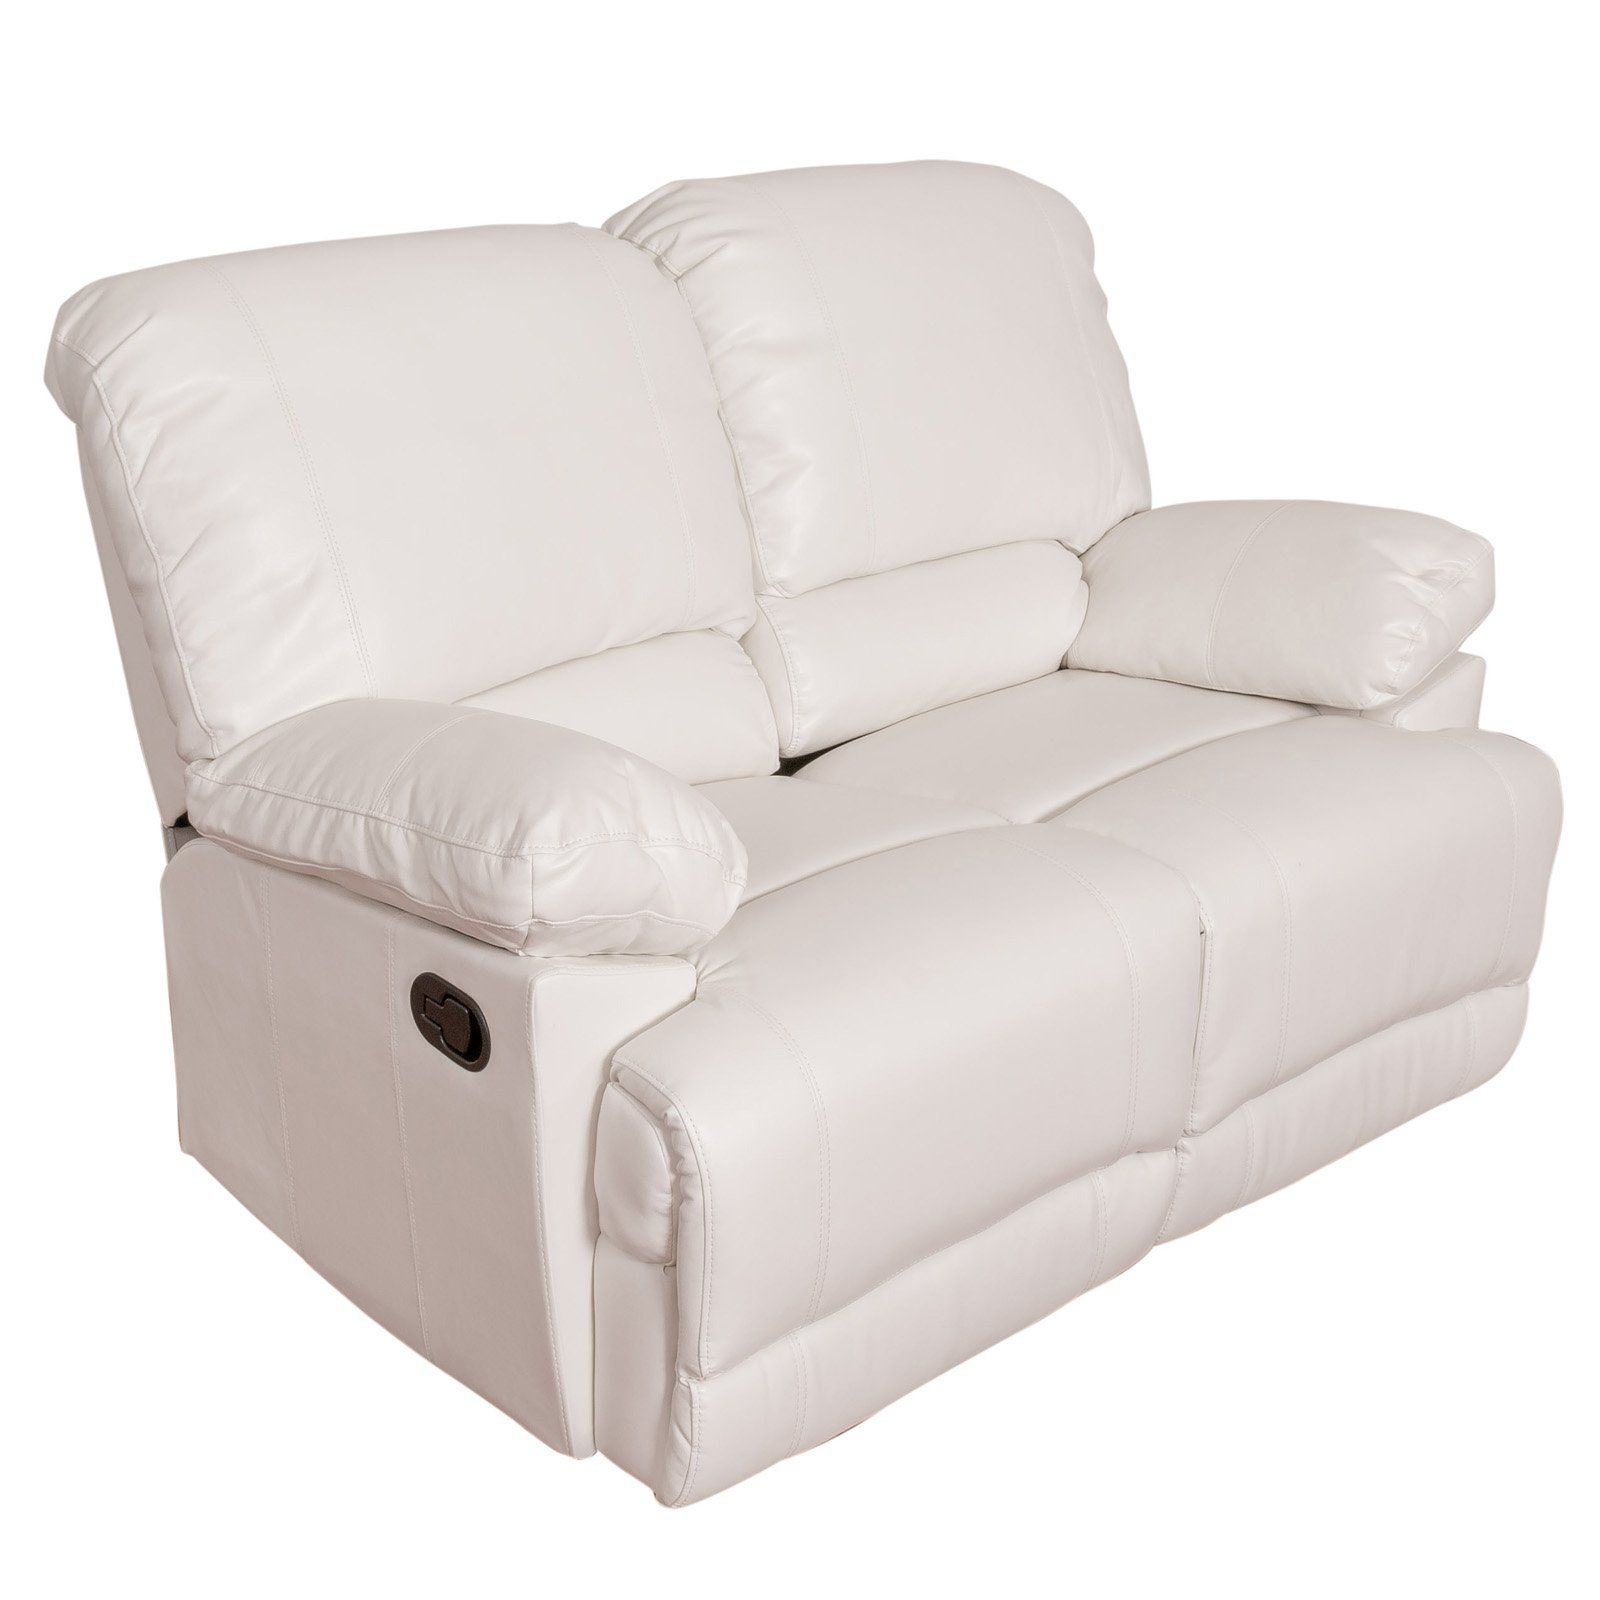 Astonishing Corliving Lea Bonded Leather Reclining Loveseat White Caraccident5 Cool Chair Designs And Ideas Caraccident5Info